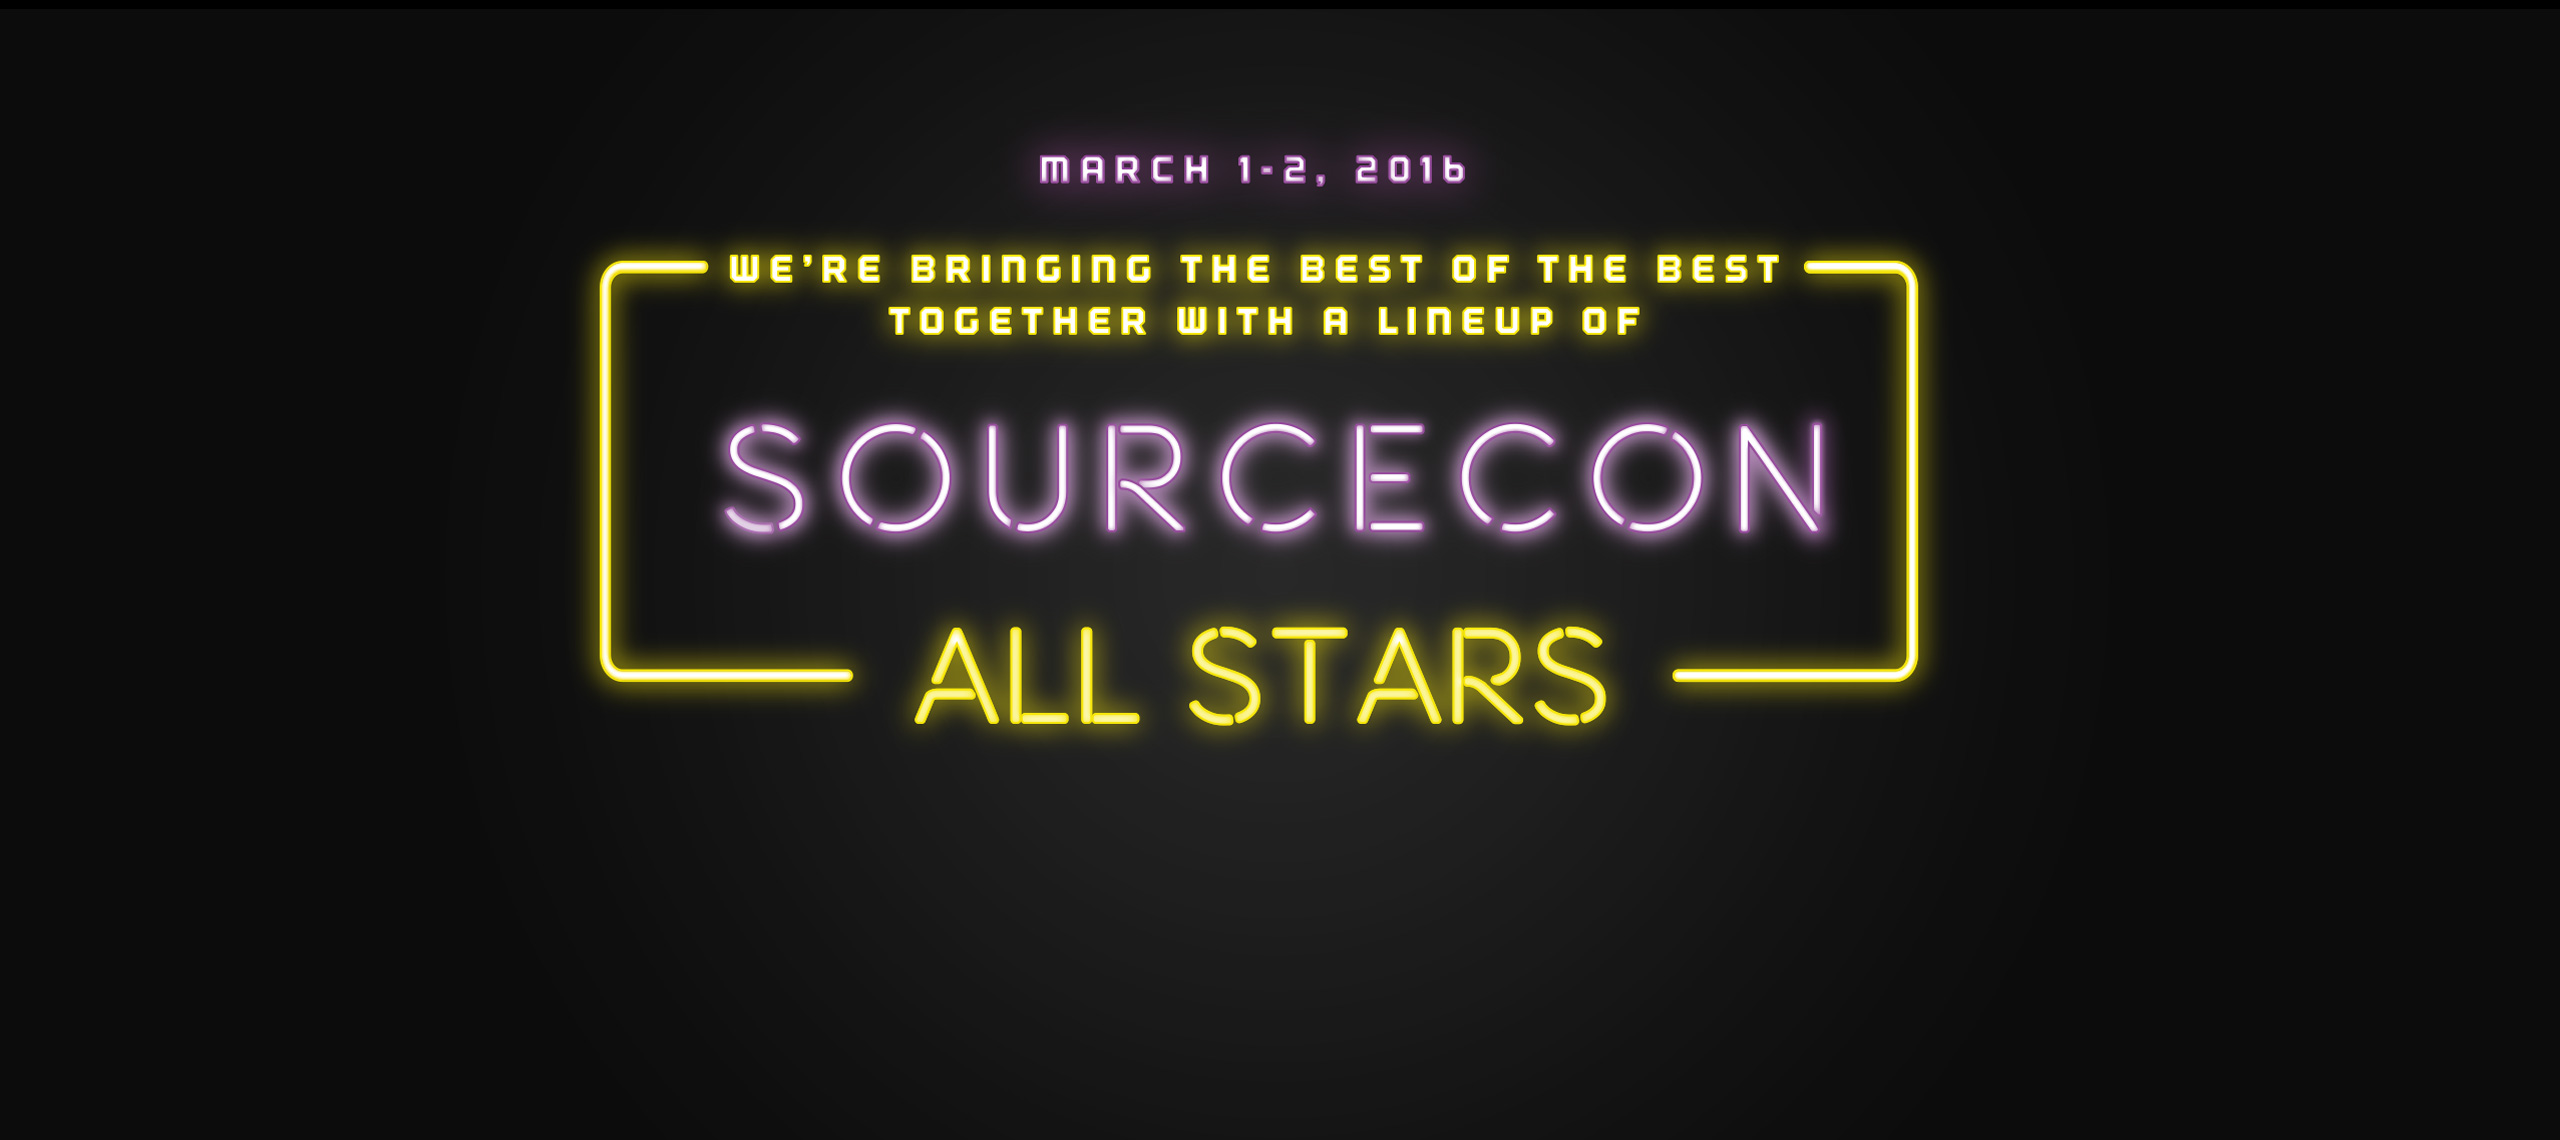 Sourcecon All Stars logo